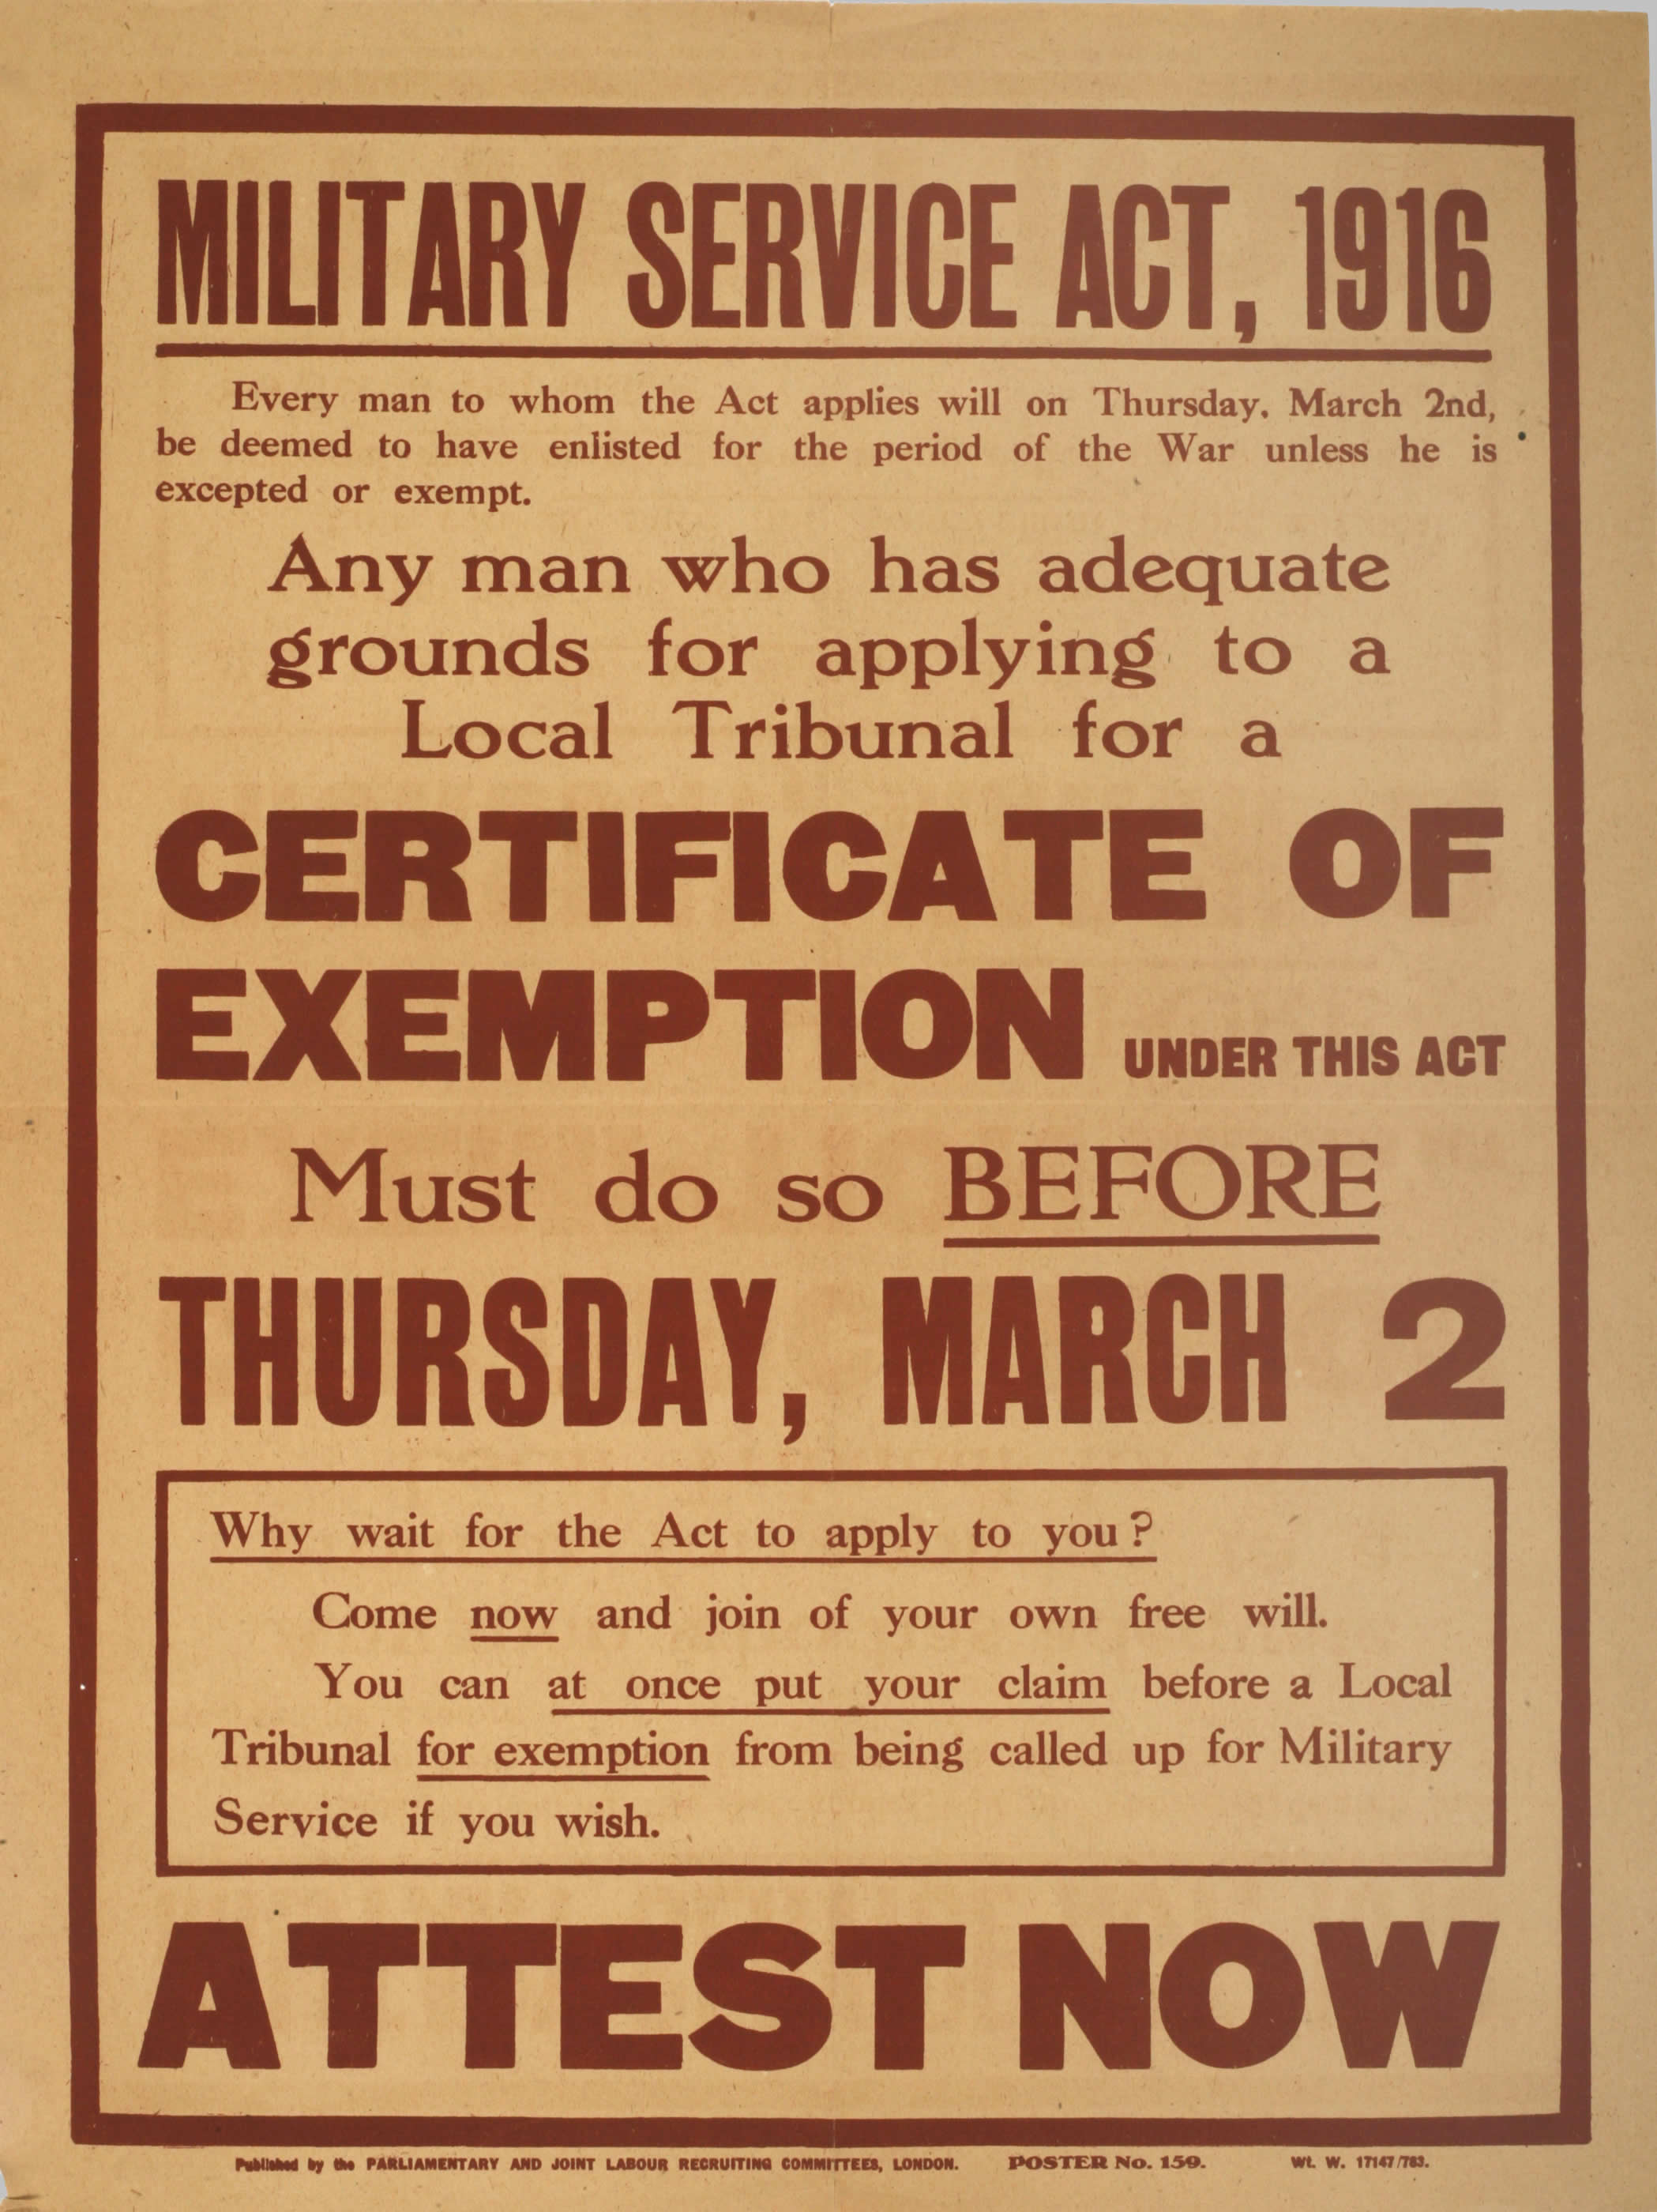 recruitment and conscription conscription and the military service act 1916